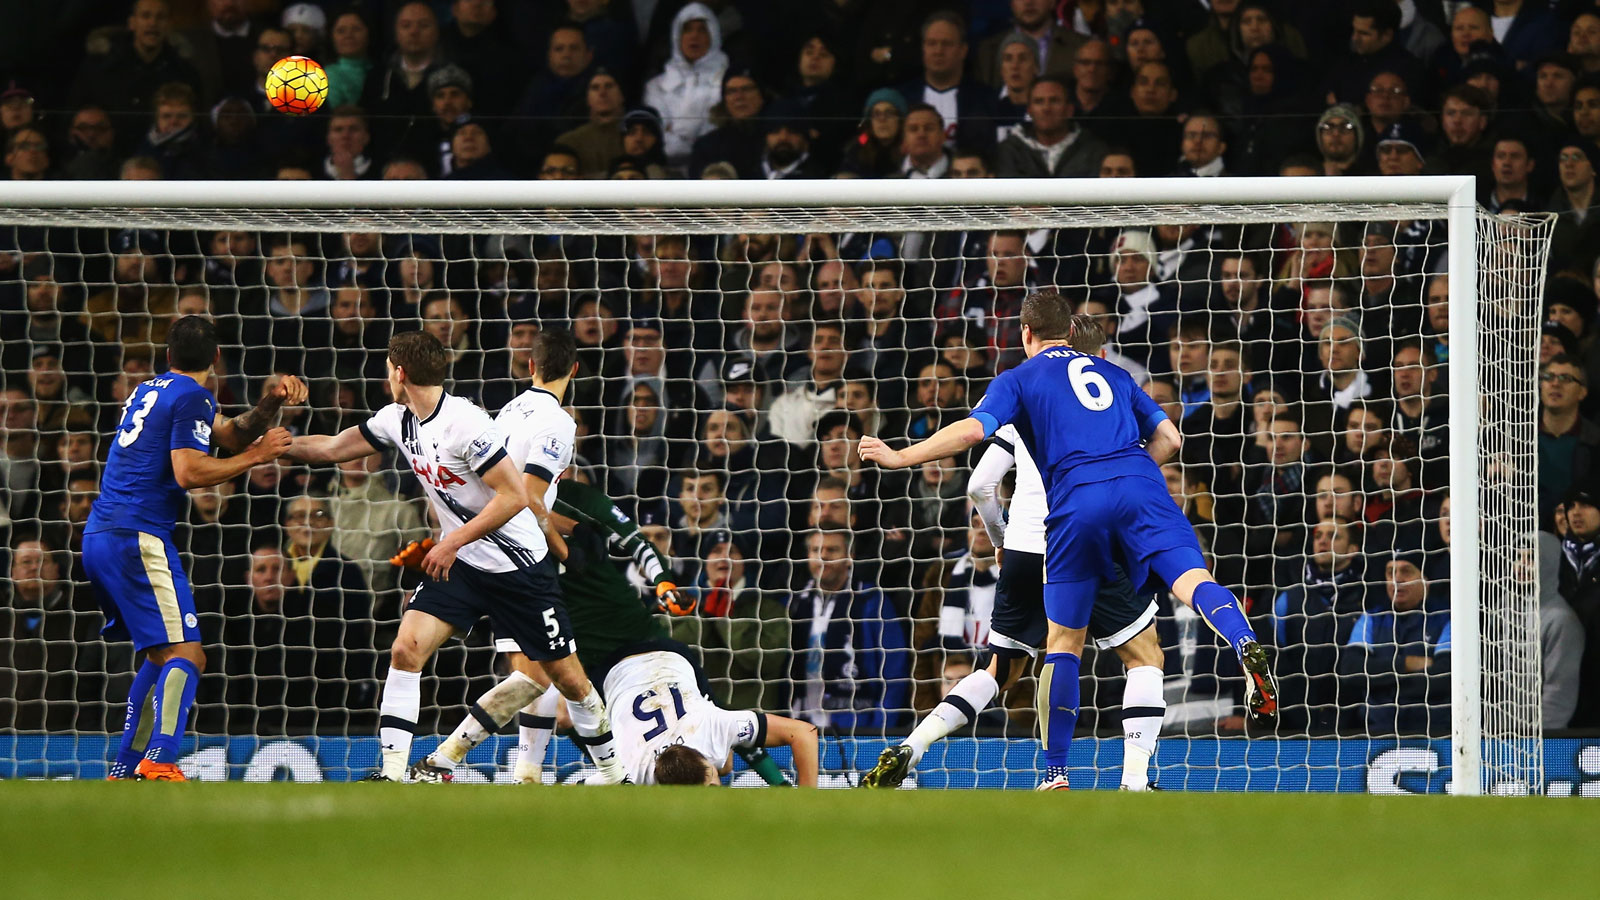 Defender Robert Huth's perfect 83rd-minute header from Christian Fuchs's corner–his first goal since last April–gave Leicester a 1-0 win over Tottenham at White Hart Lane, snapping a three-game winless run.